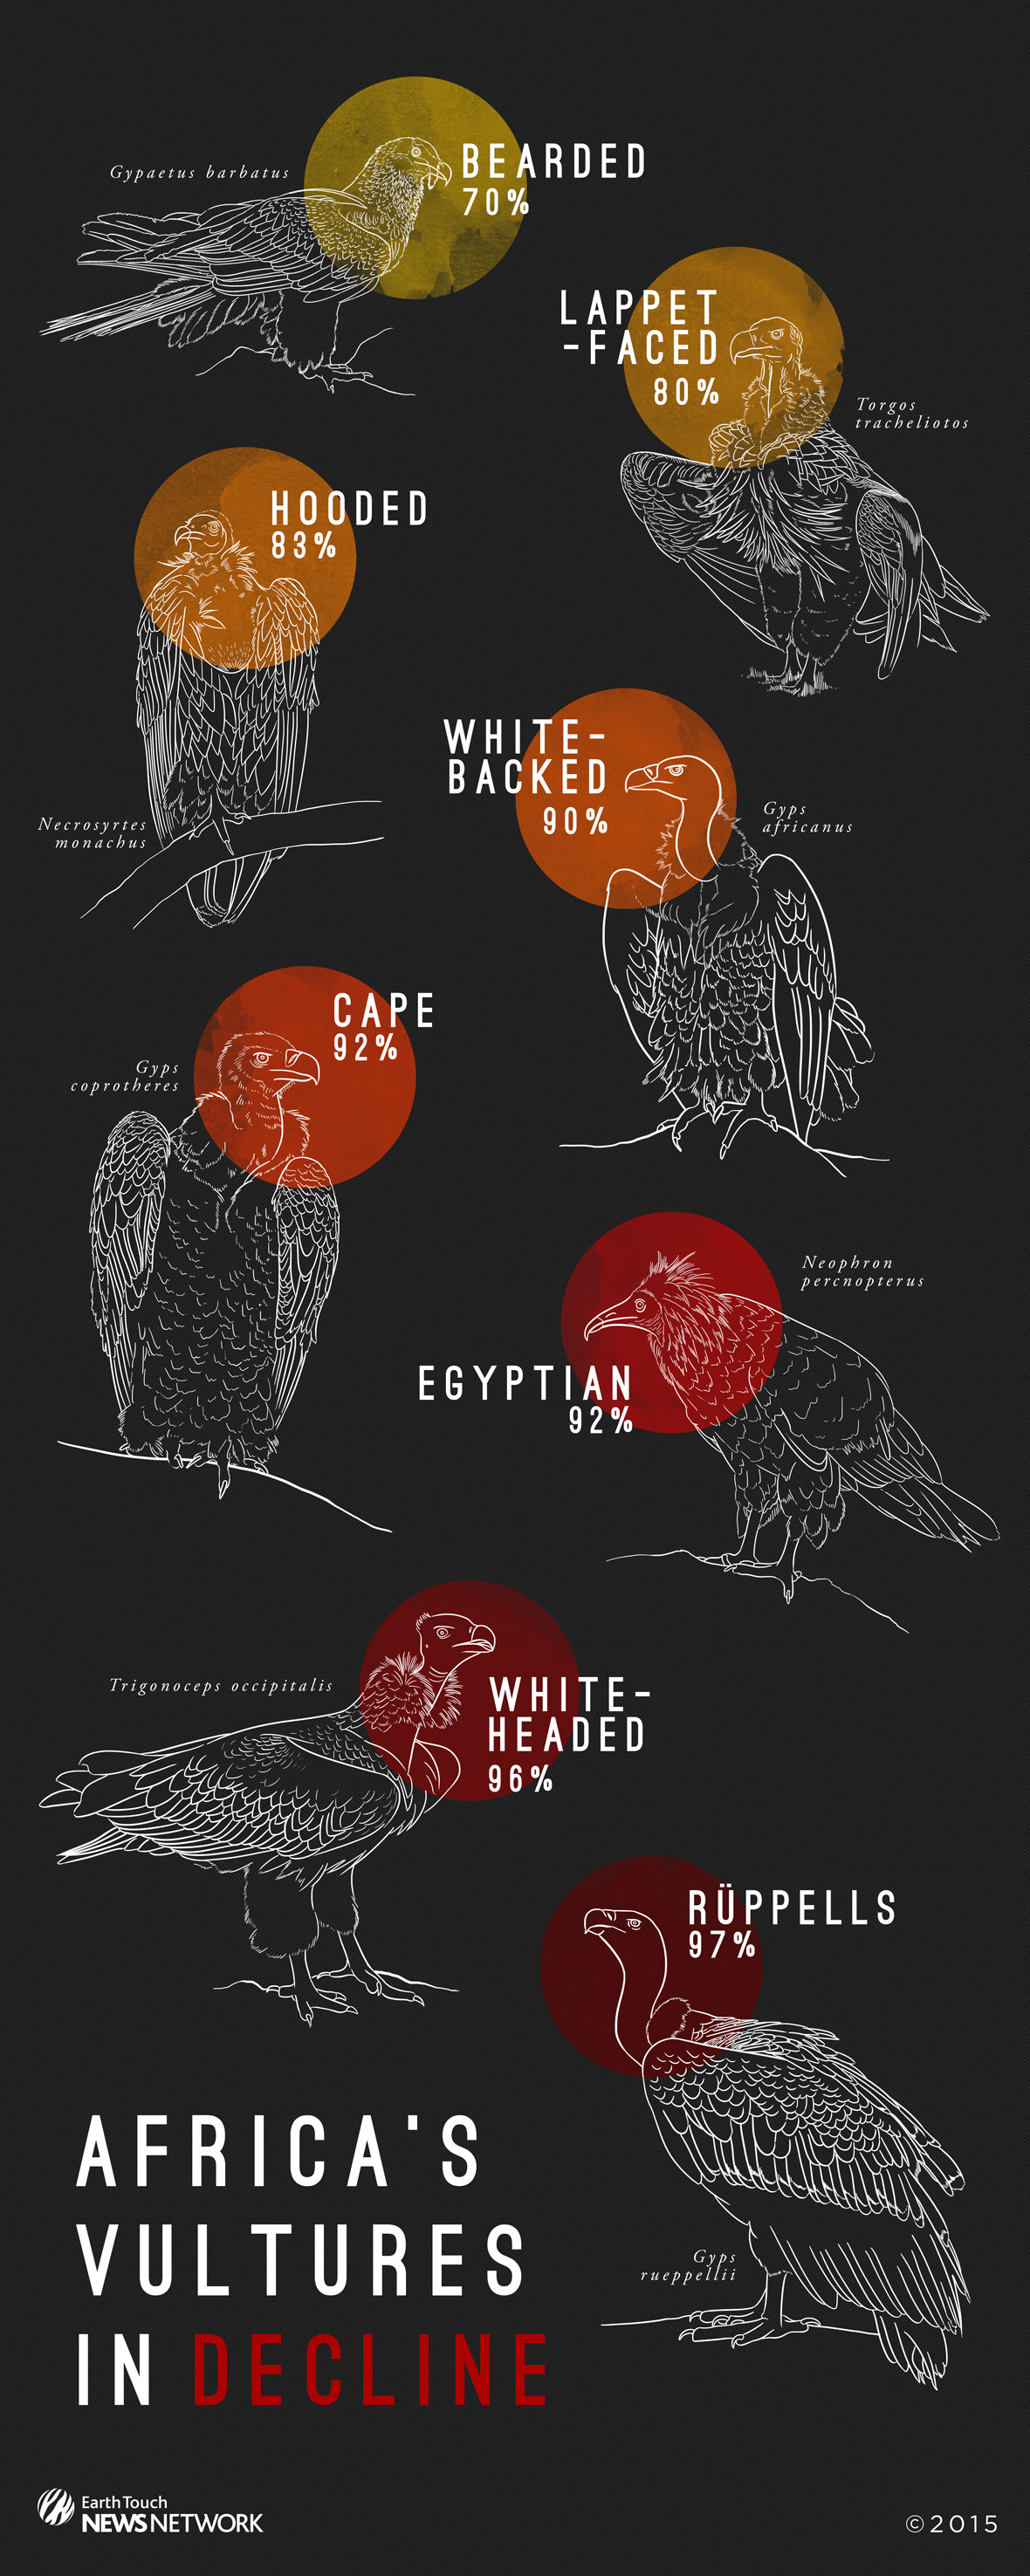 Infographic: Africa's vultures in decline